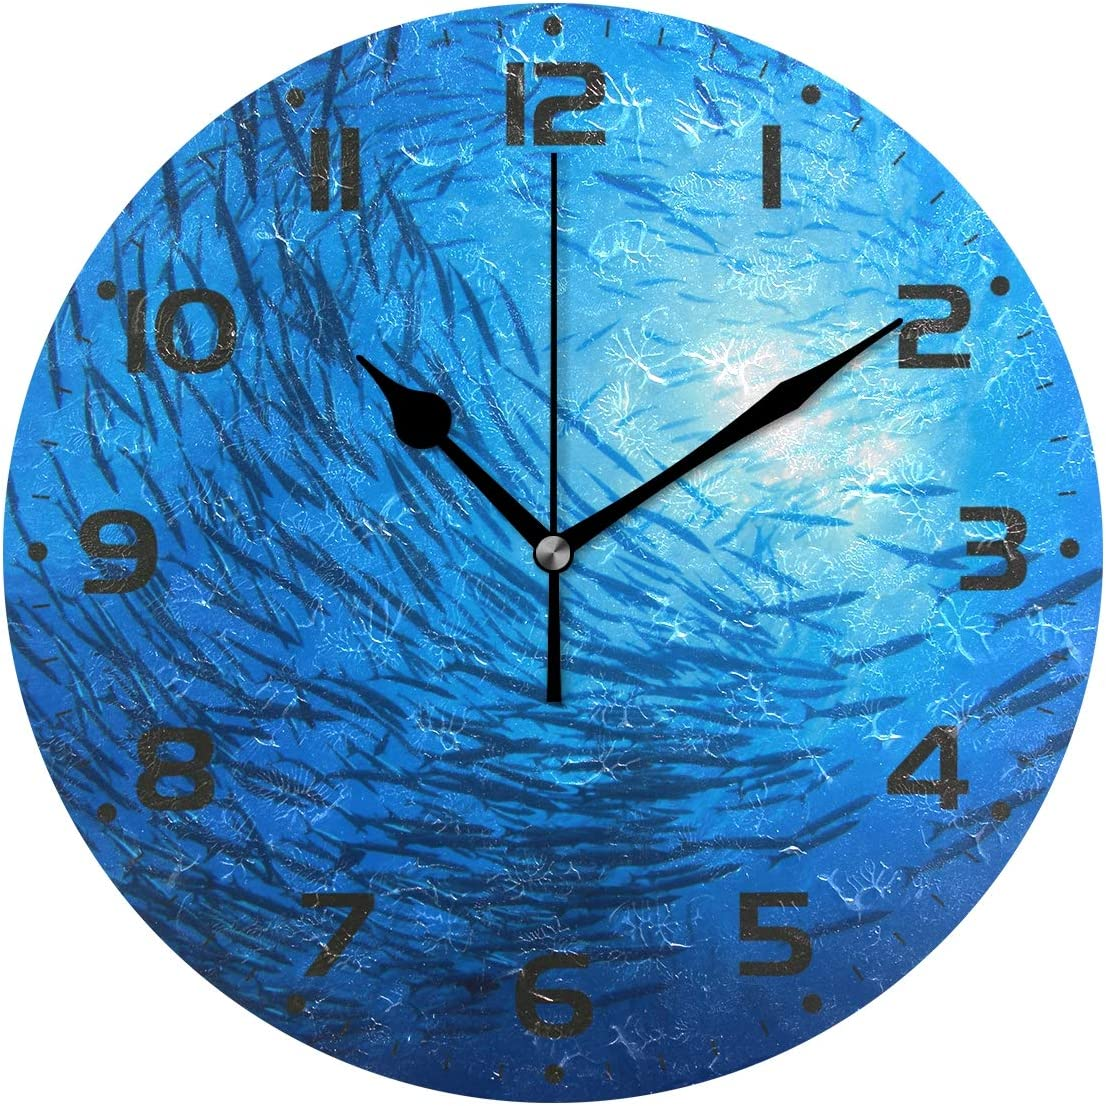 Naanle School Barracuda Fish Circle Floating in Blue Ocean Sunshine  Round/Square/Diamond Acrylic Wall Clock Oil Painting Home Office School  Decorative ...